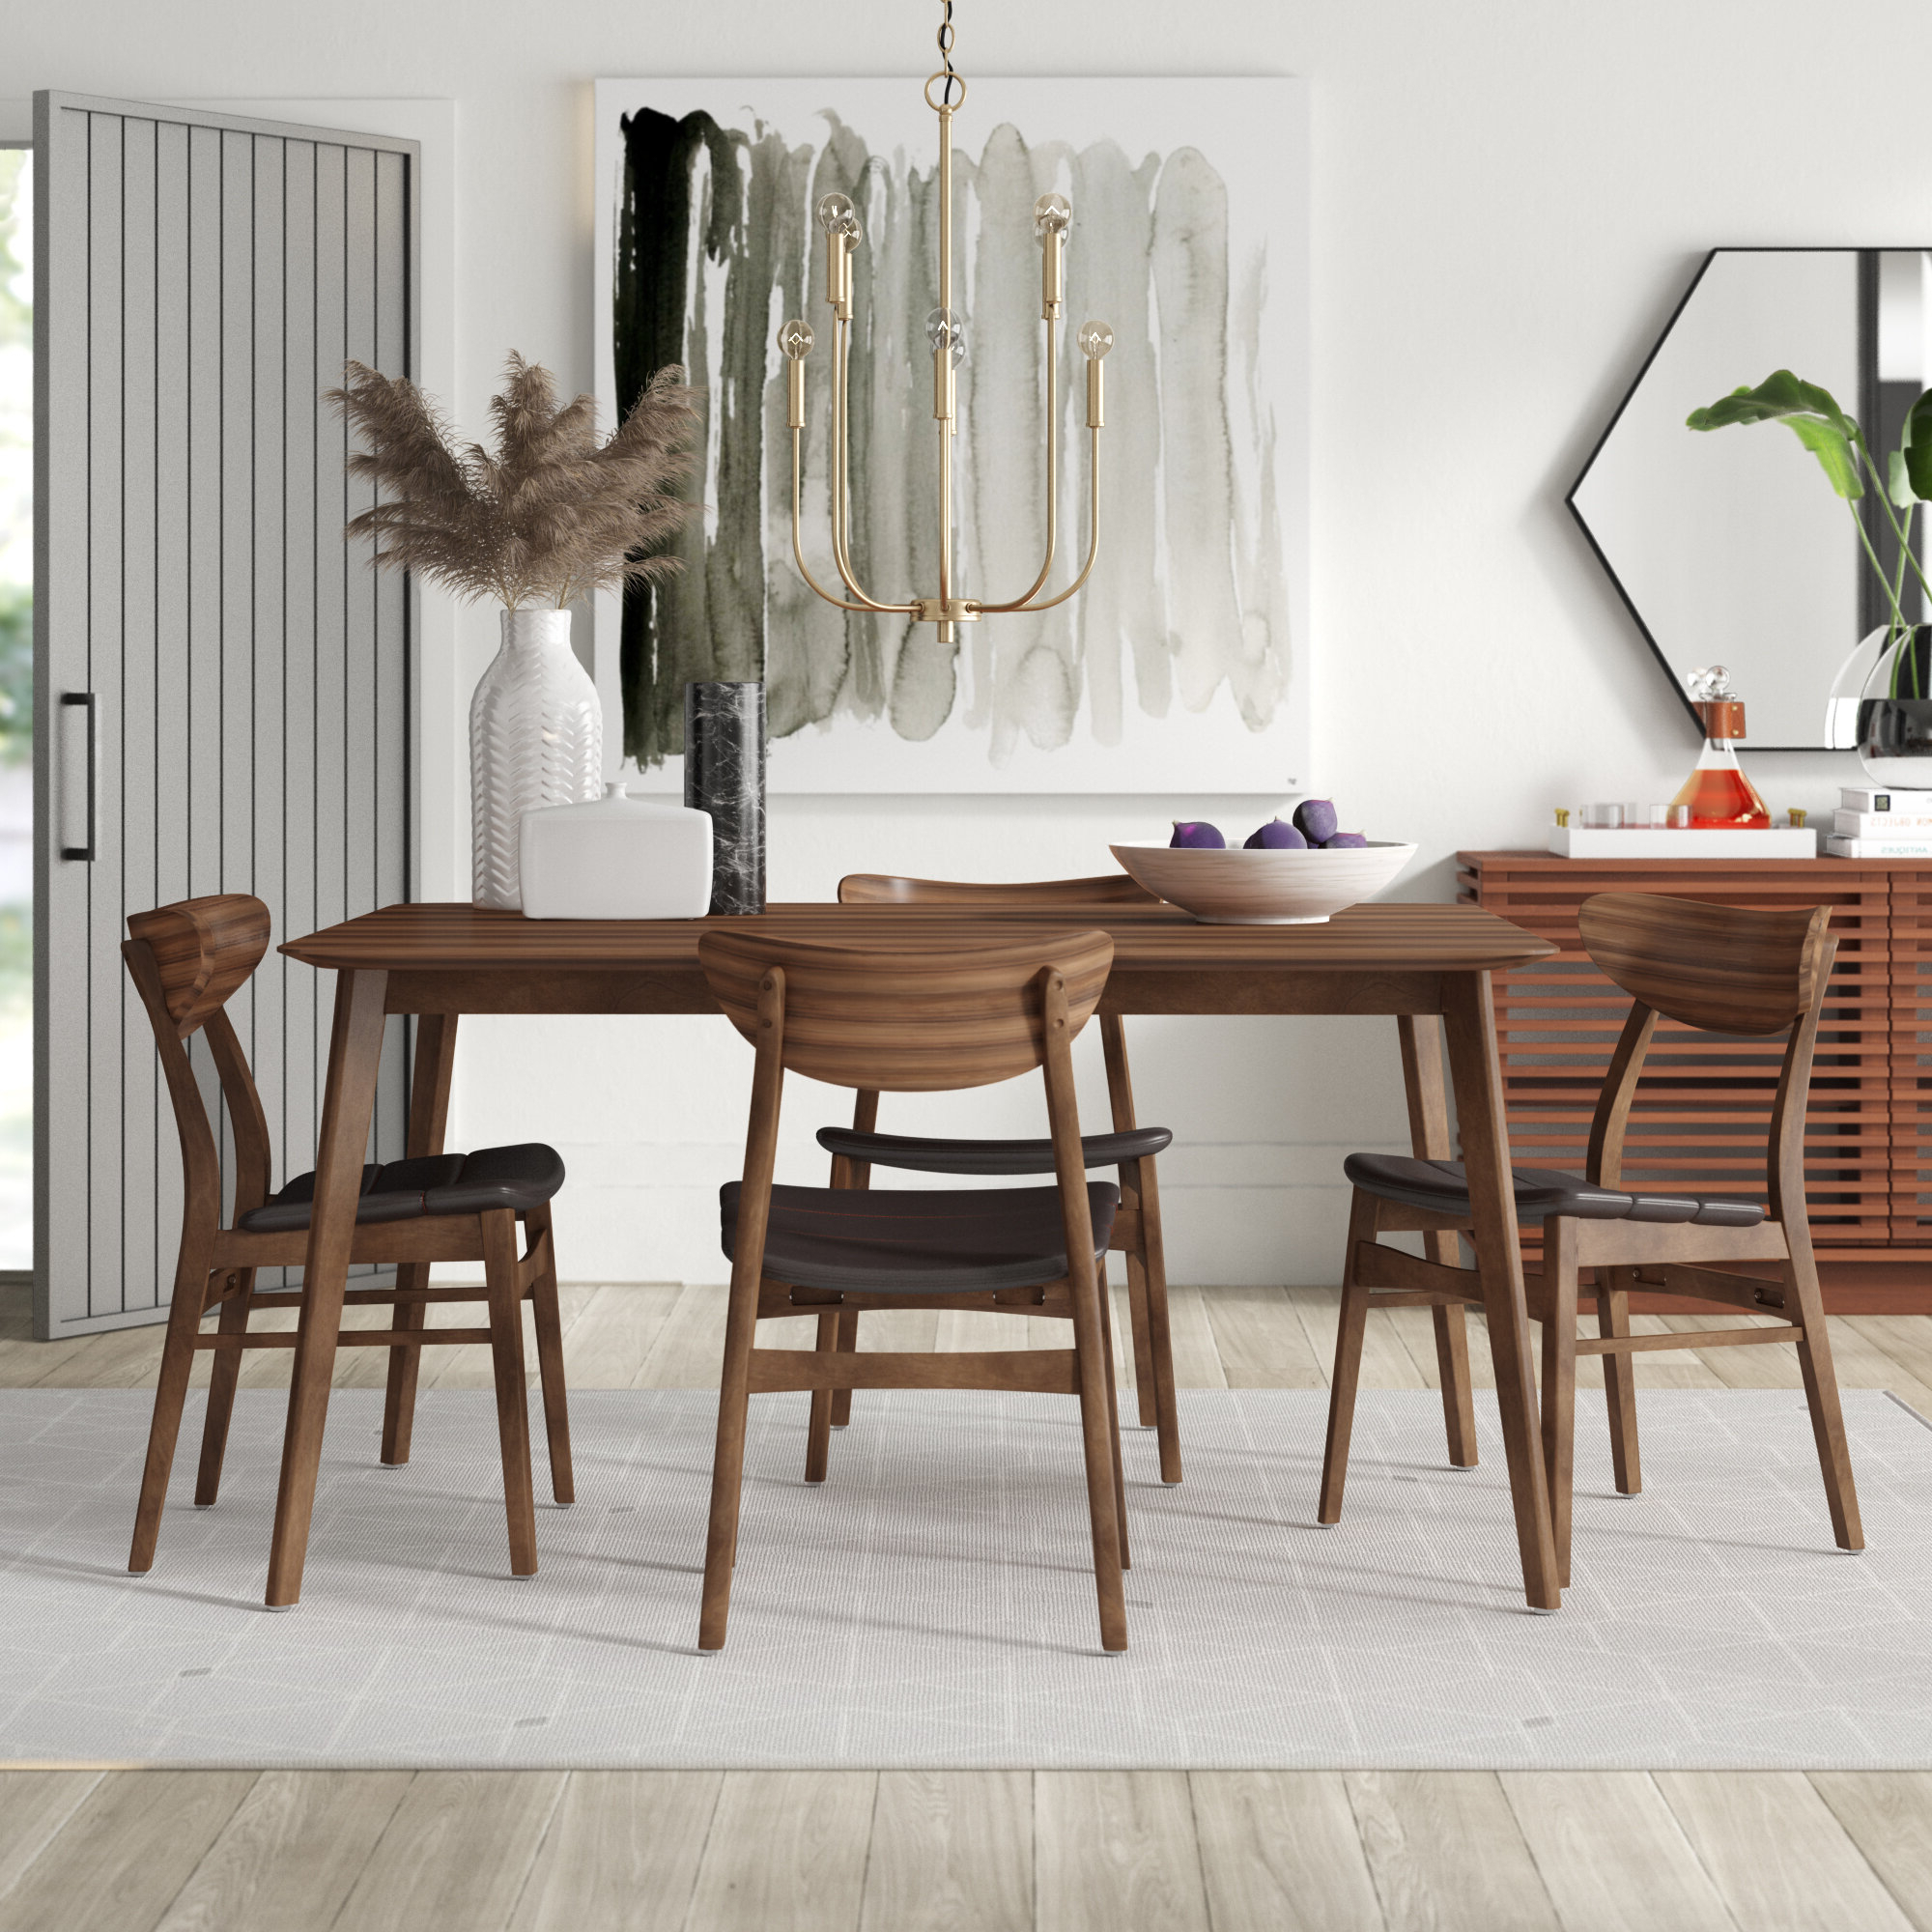 Most Popular Casiano 5 Piece Dining Sets With Regard To Lillis 5 Piece Dining Set (View 6 of 20)